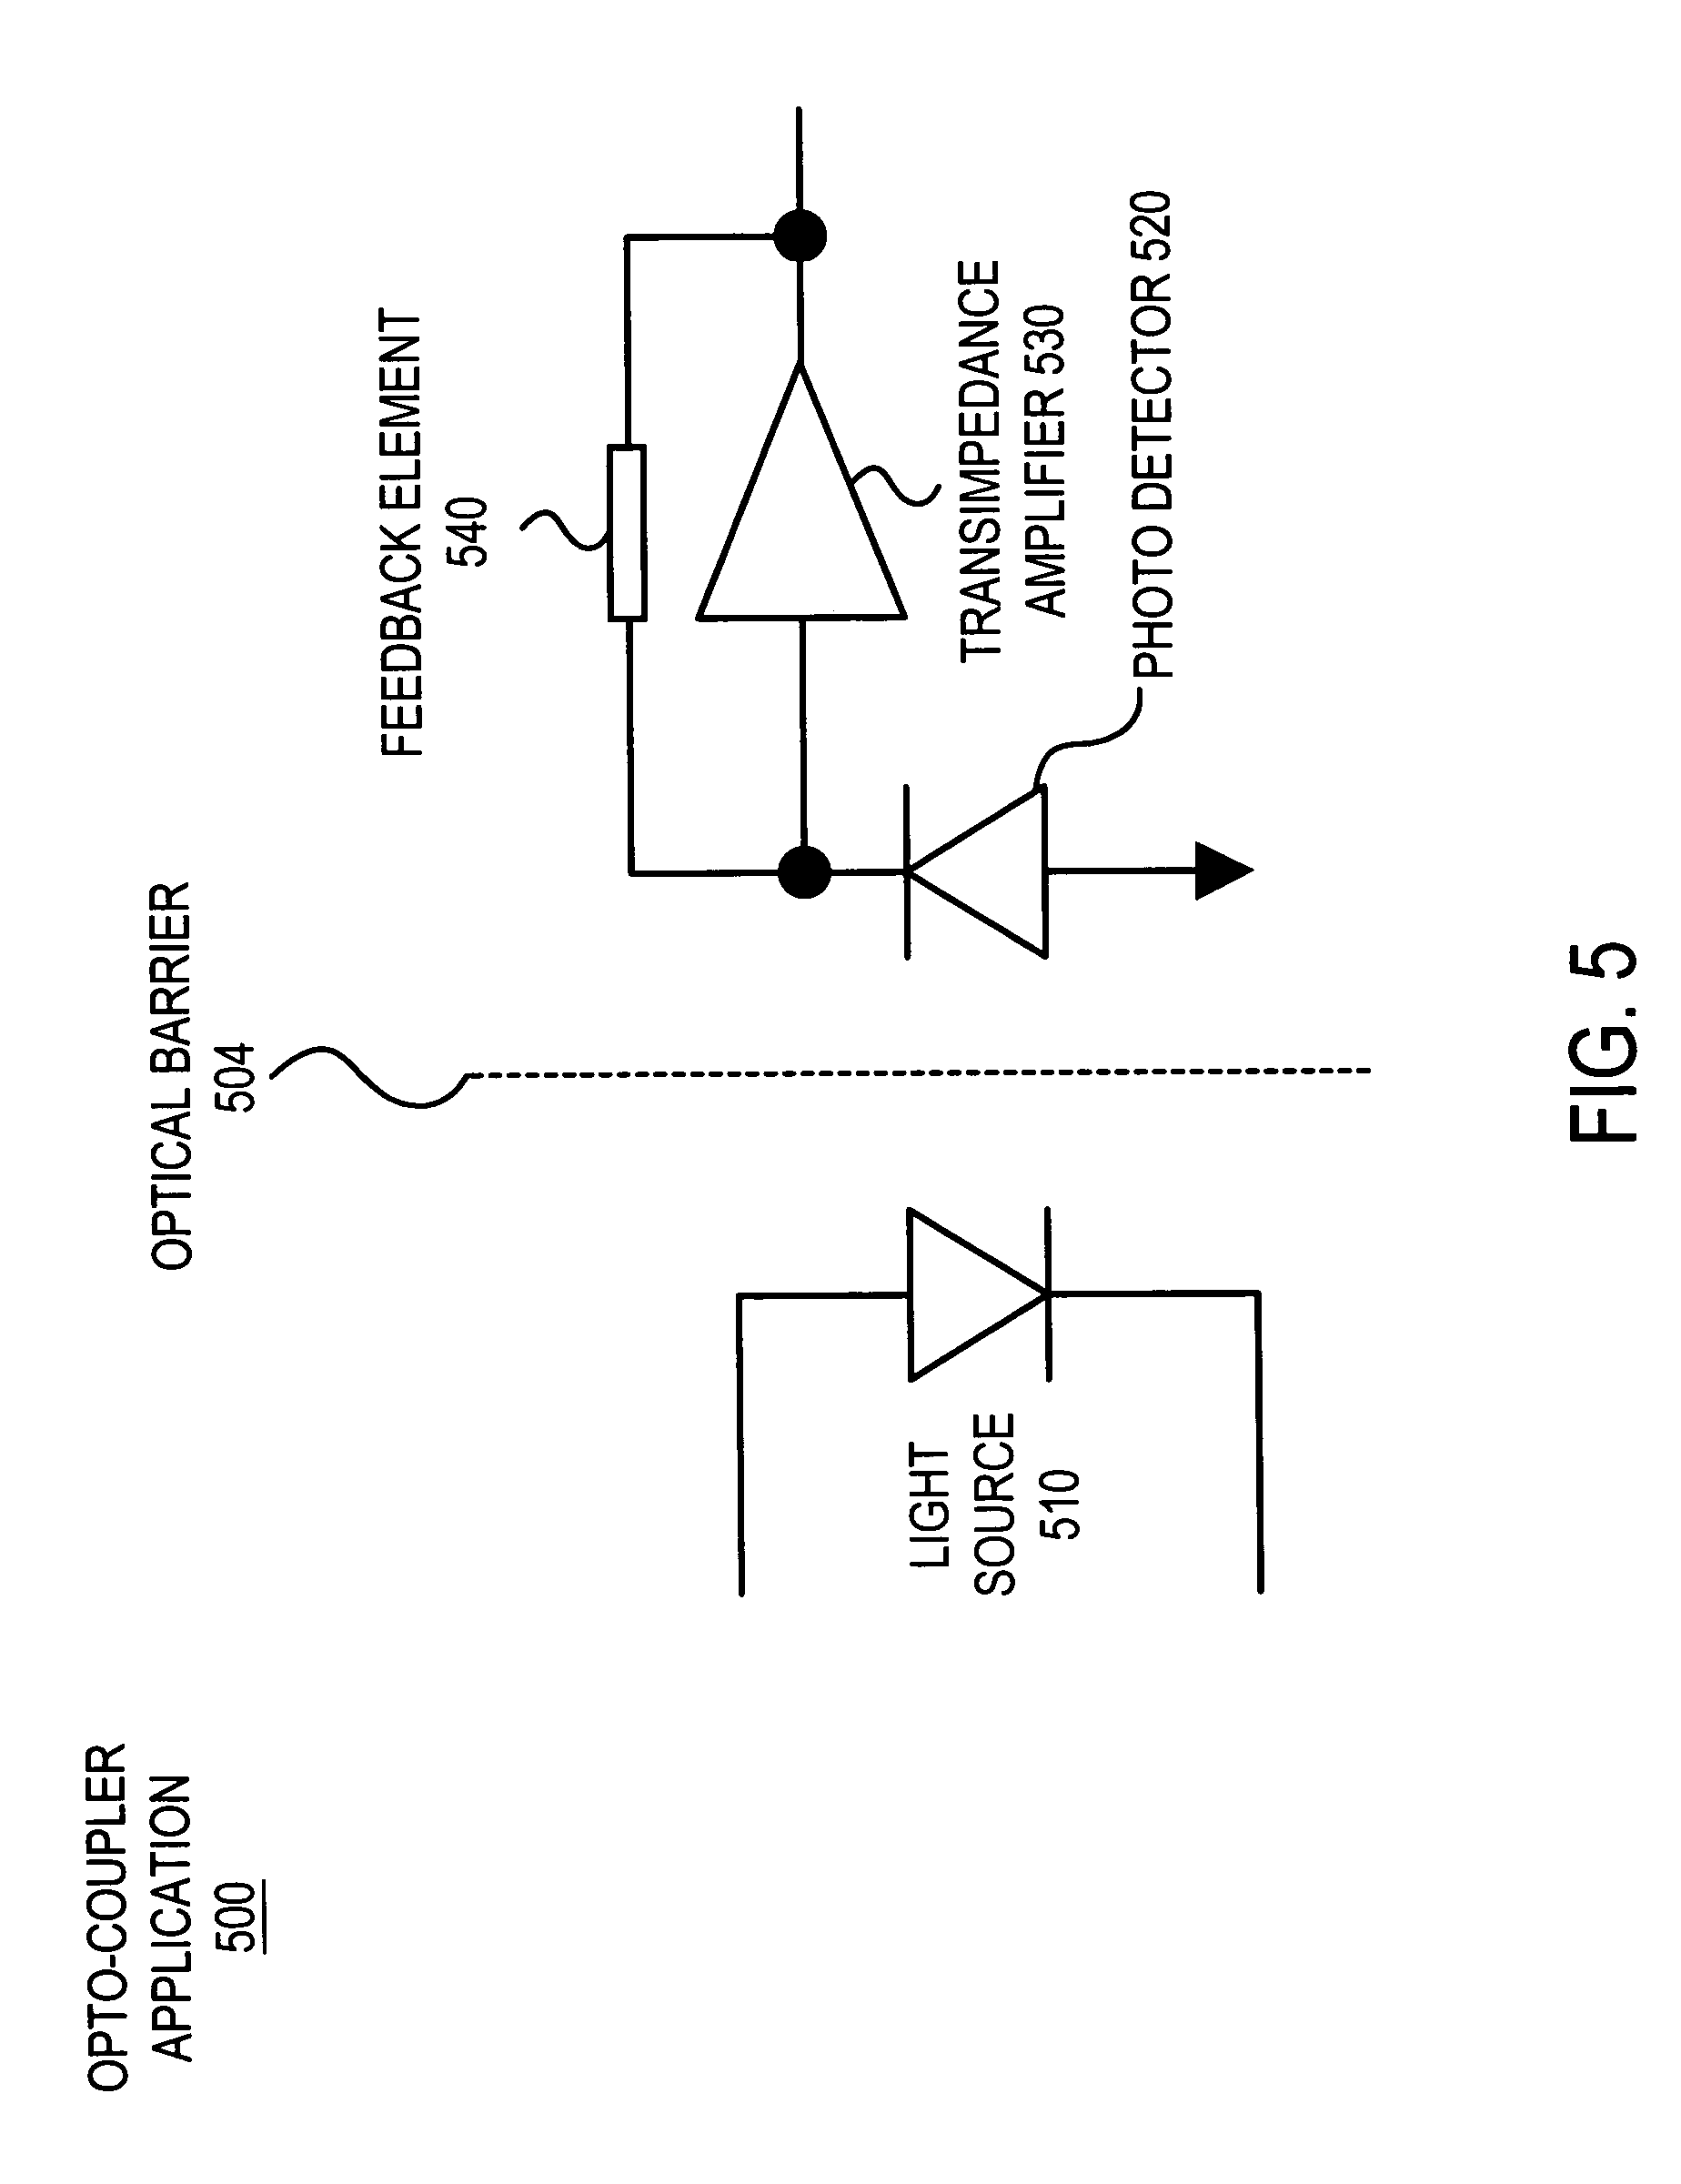 Proposed Transimpedance Amplifier Schematic Patent Us 7265631 B2 0 Petitions